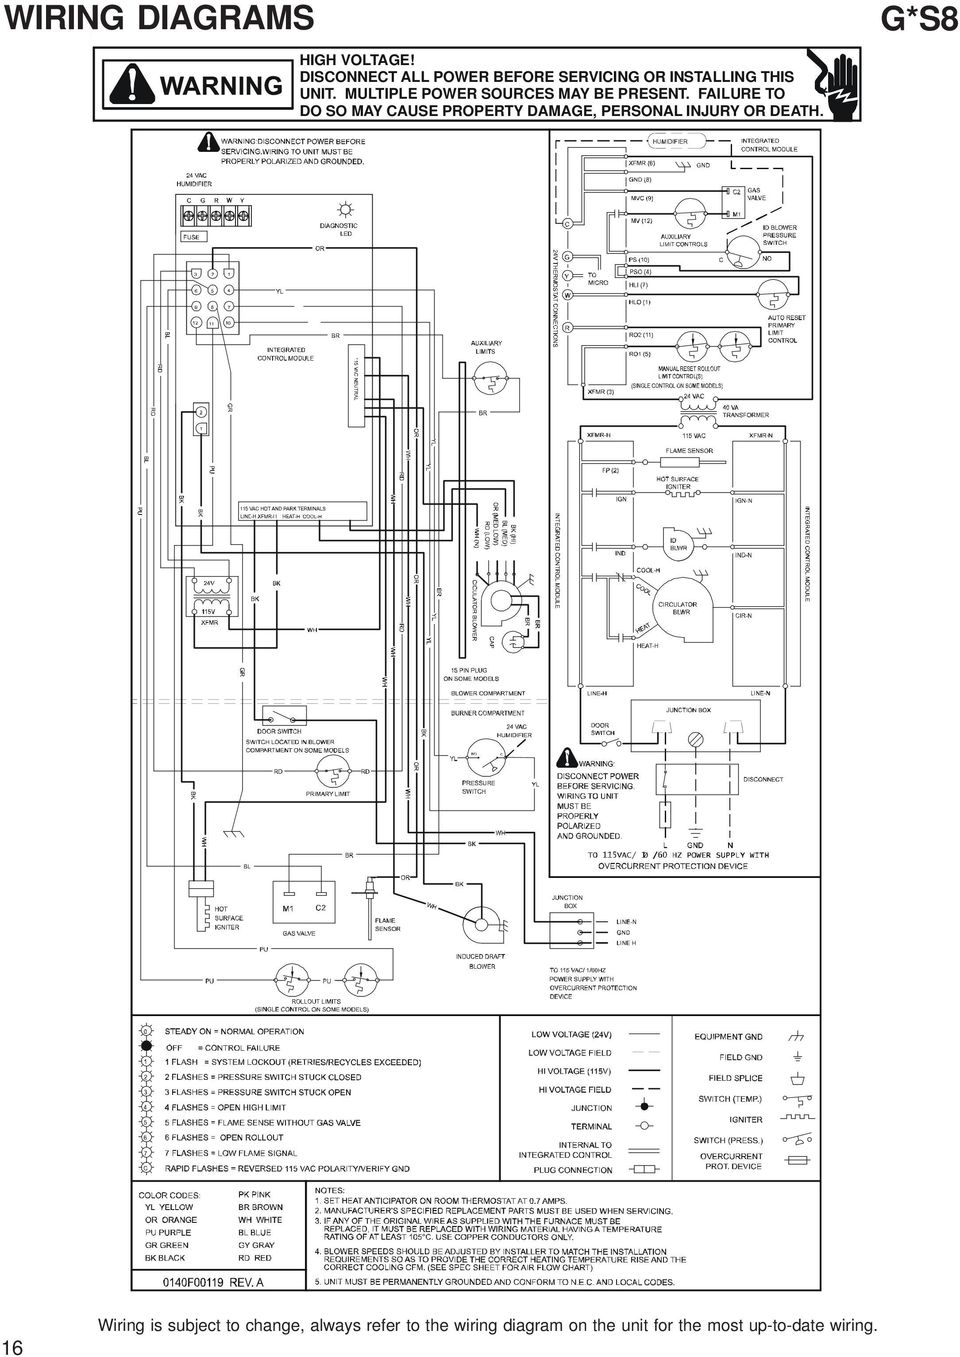 Wiring Diagram Trane Humidifier Electric Heat Thc0 Thc 960x1357